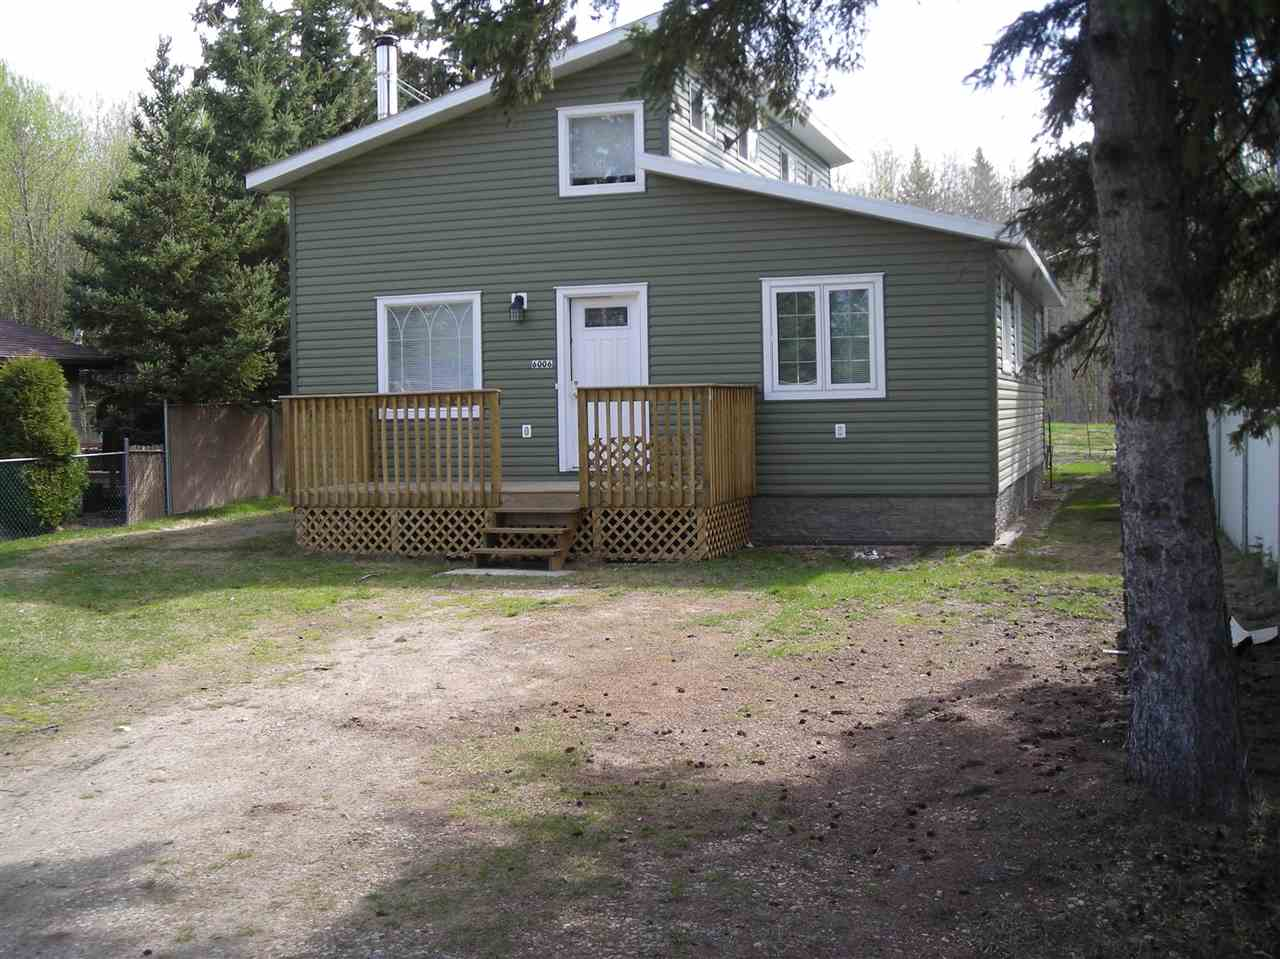 Charming home in Mulhurst Bay, north side of Pigeon Lake. This home offers 2 bedrooms plus upper loft area, 1 bathroom with Jacuzzi tub, all appliances will stay, wood stove in living room, vaulted ceilings & a short walk to the lake.